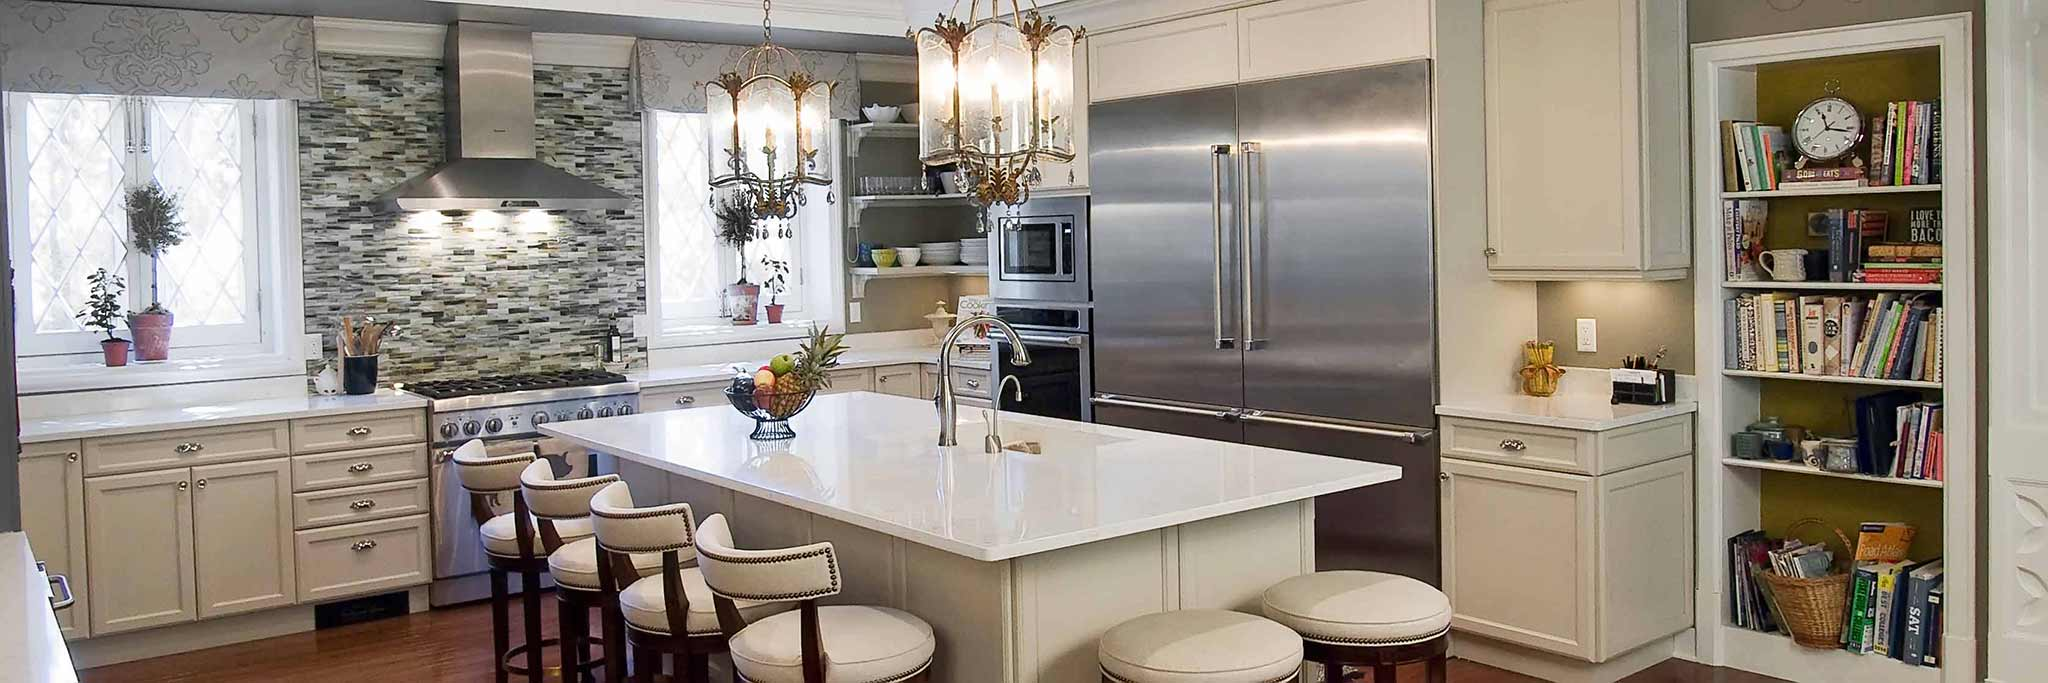 kitchen ideas newtown pa